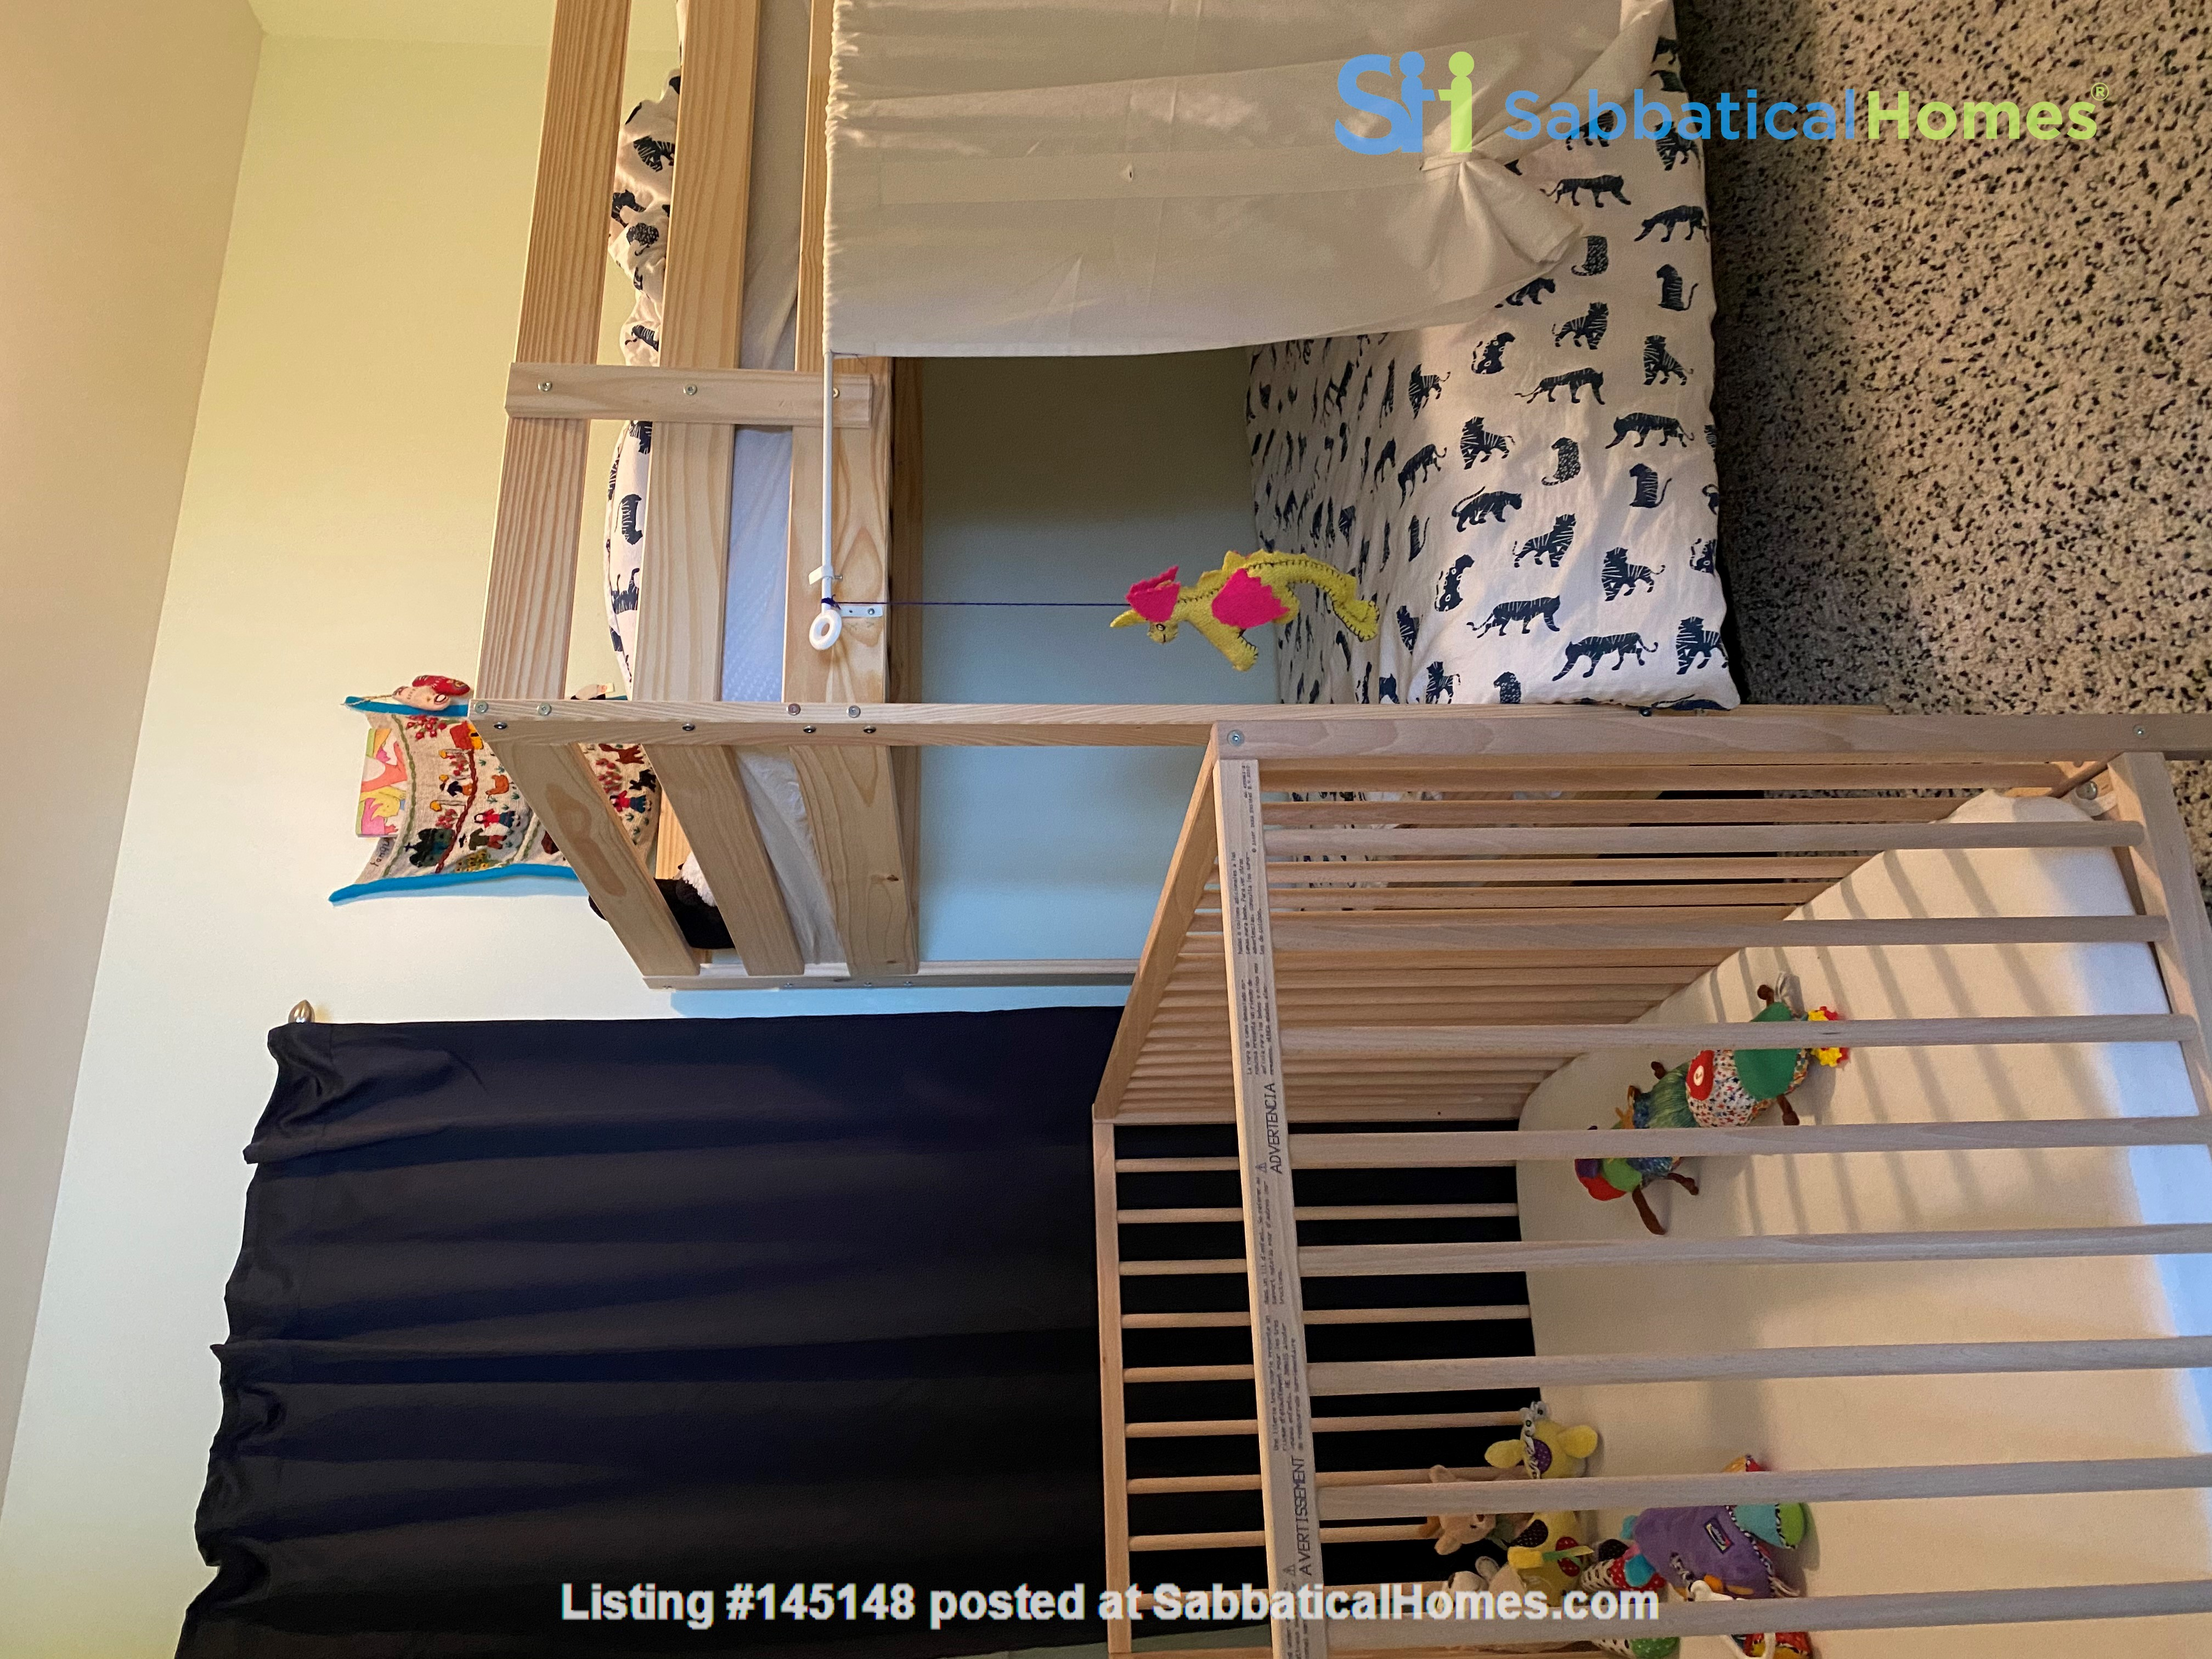 2-BR Renovated Bungalow: Perfect for a family with young kids! Home Rental in Toronto, Ontario, Canada 4